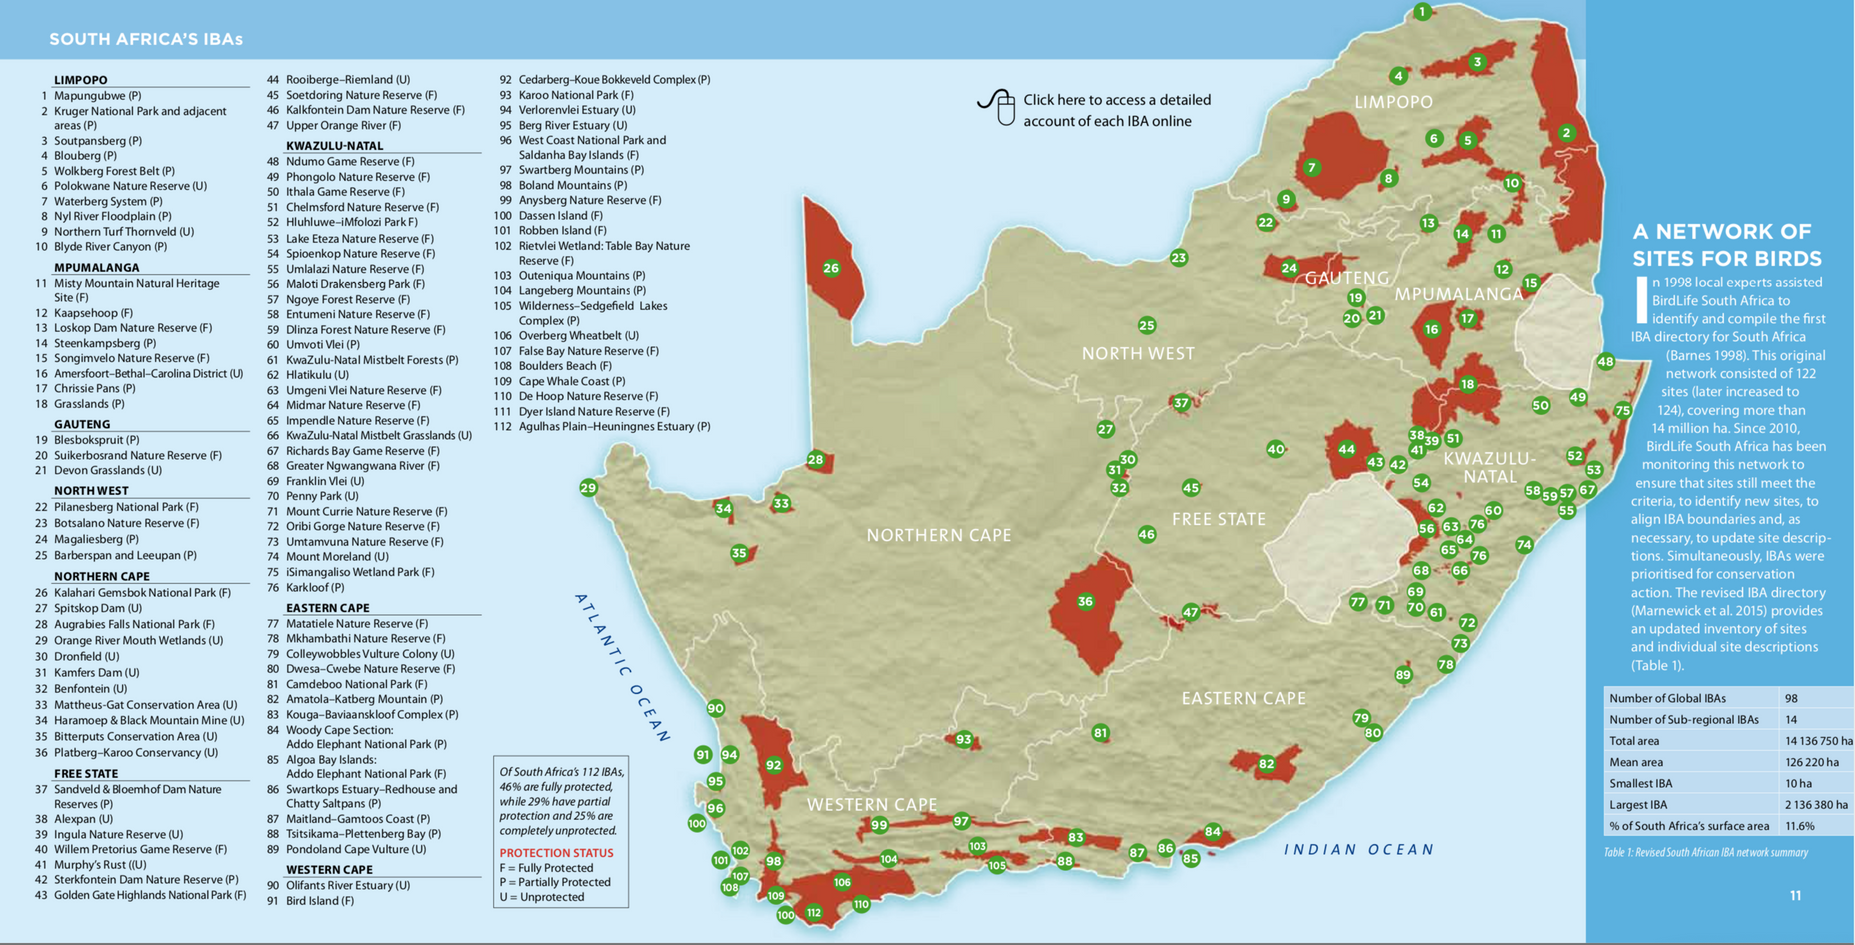 South Africa Important Bird Areas